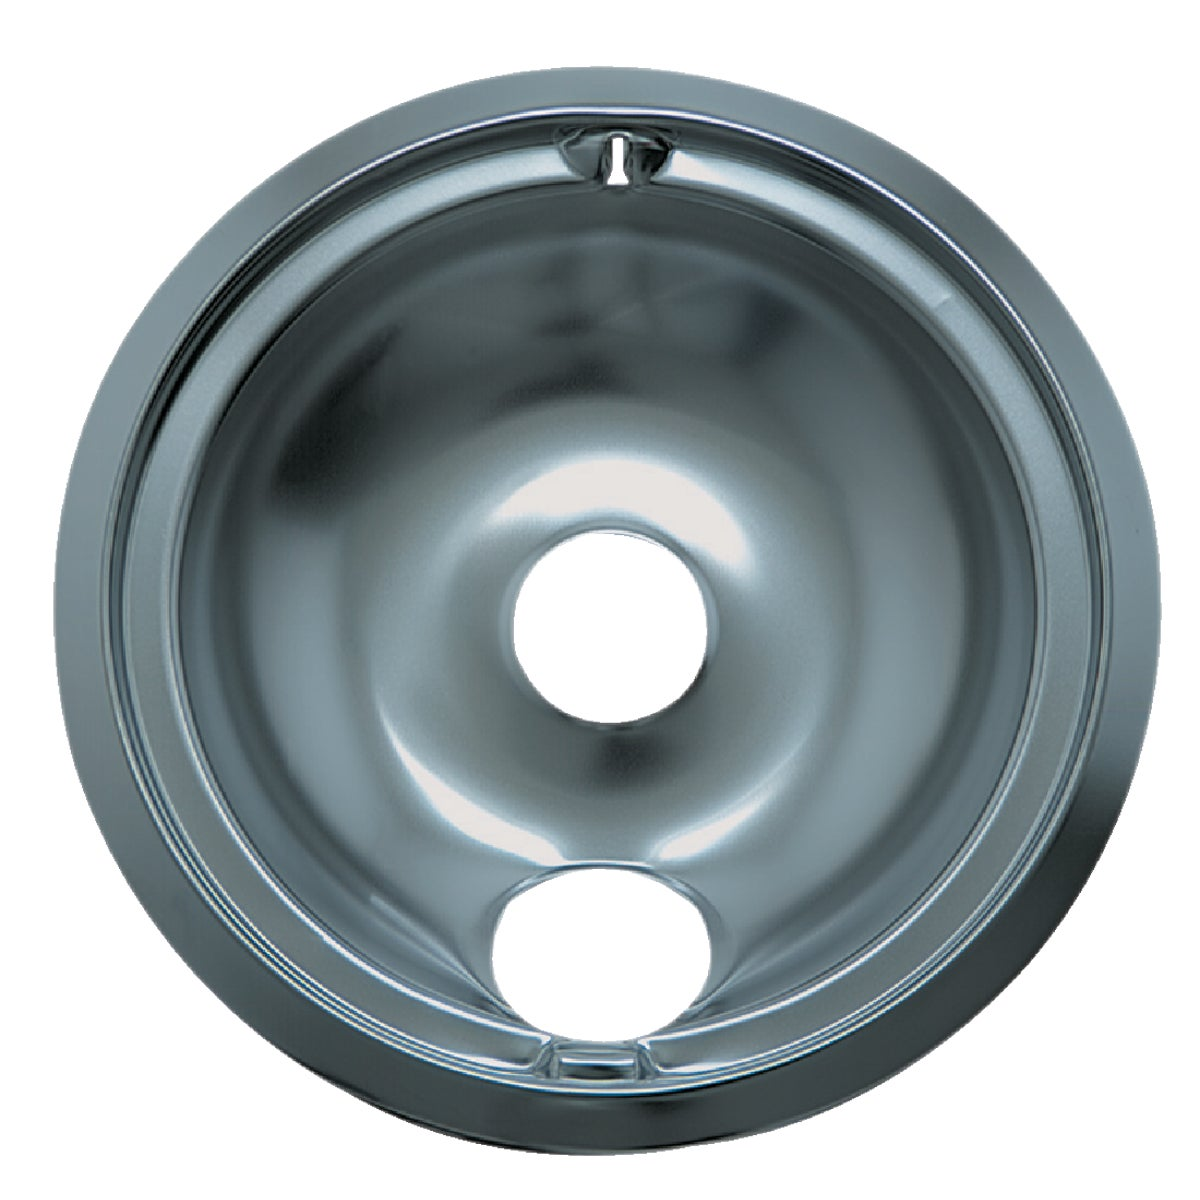 "6"" CHROME DRIP PAN - 119A by Range Kleen Mfg Inc"